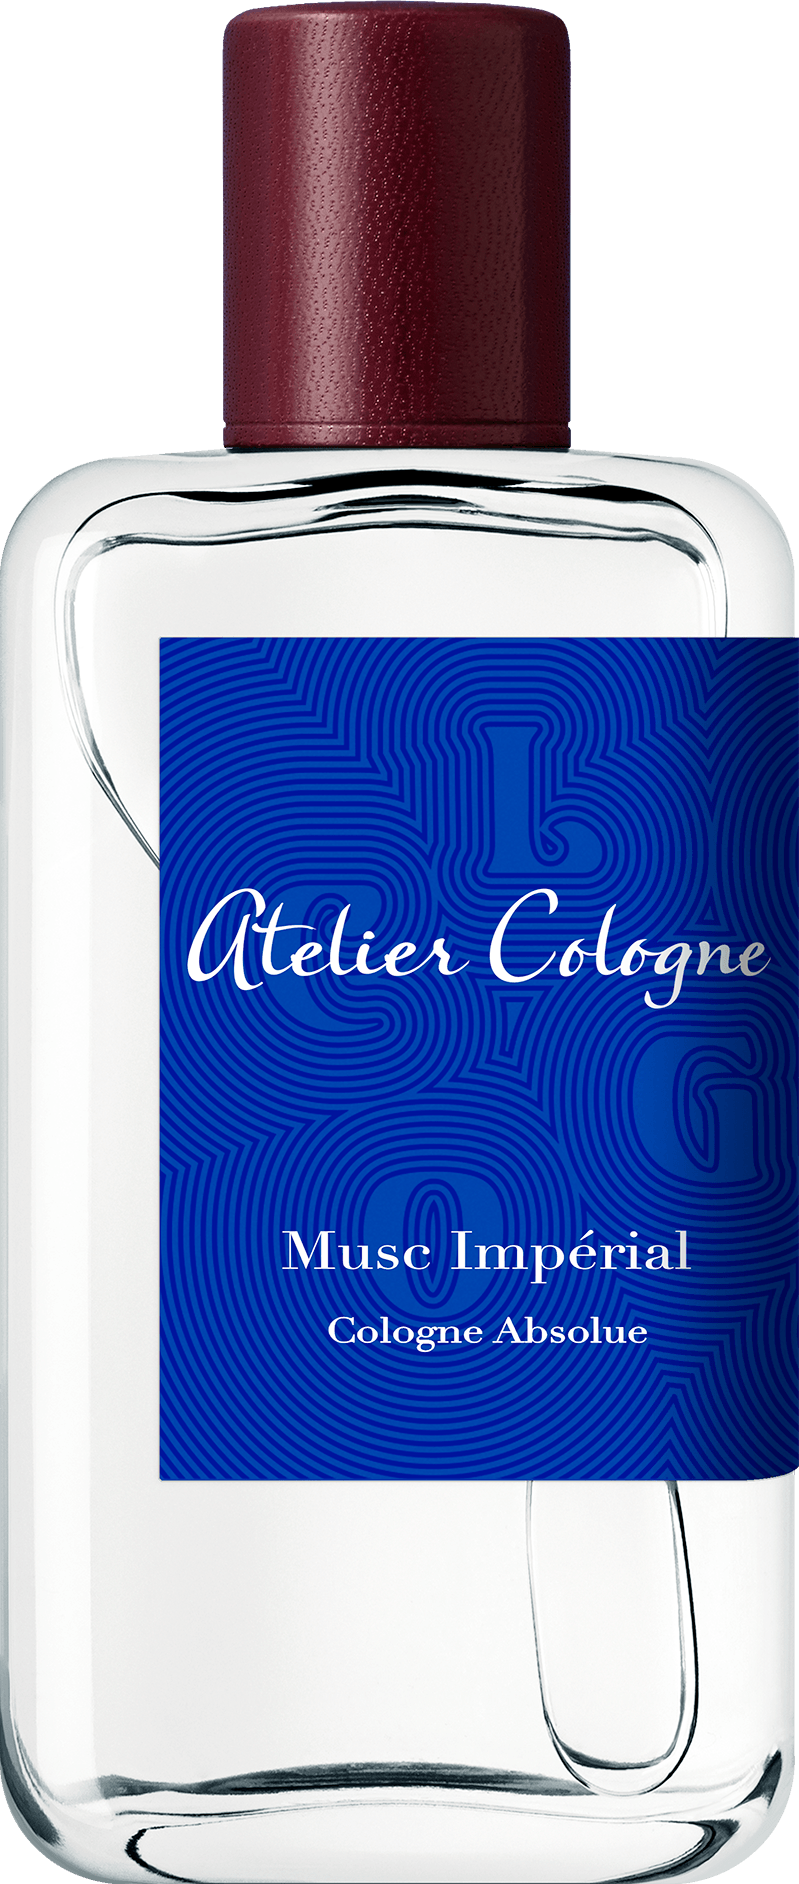 Atelier Cologne Musc Impérial, cologne for father's day